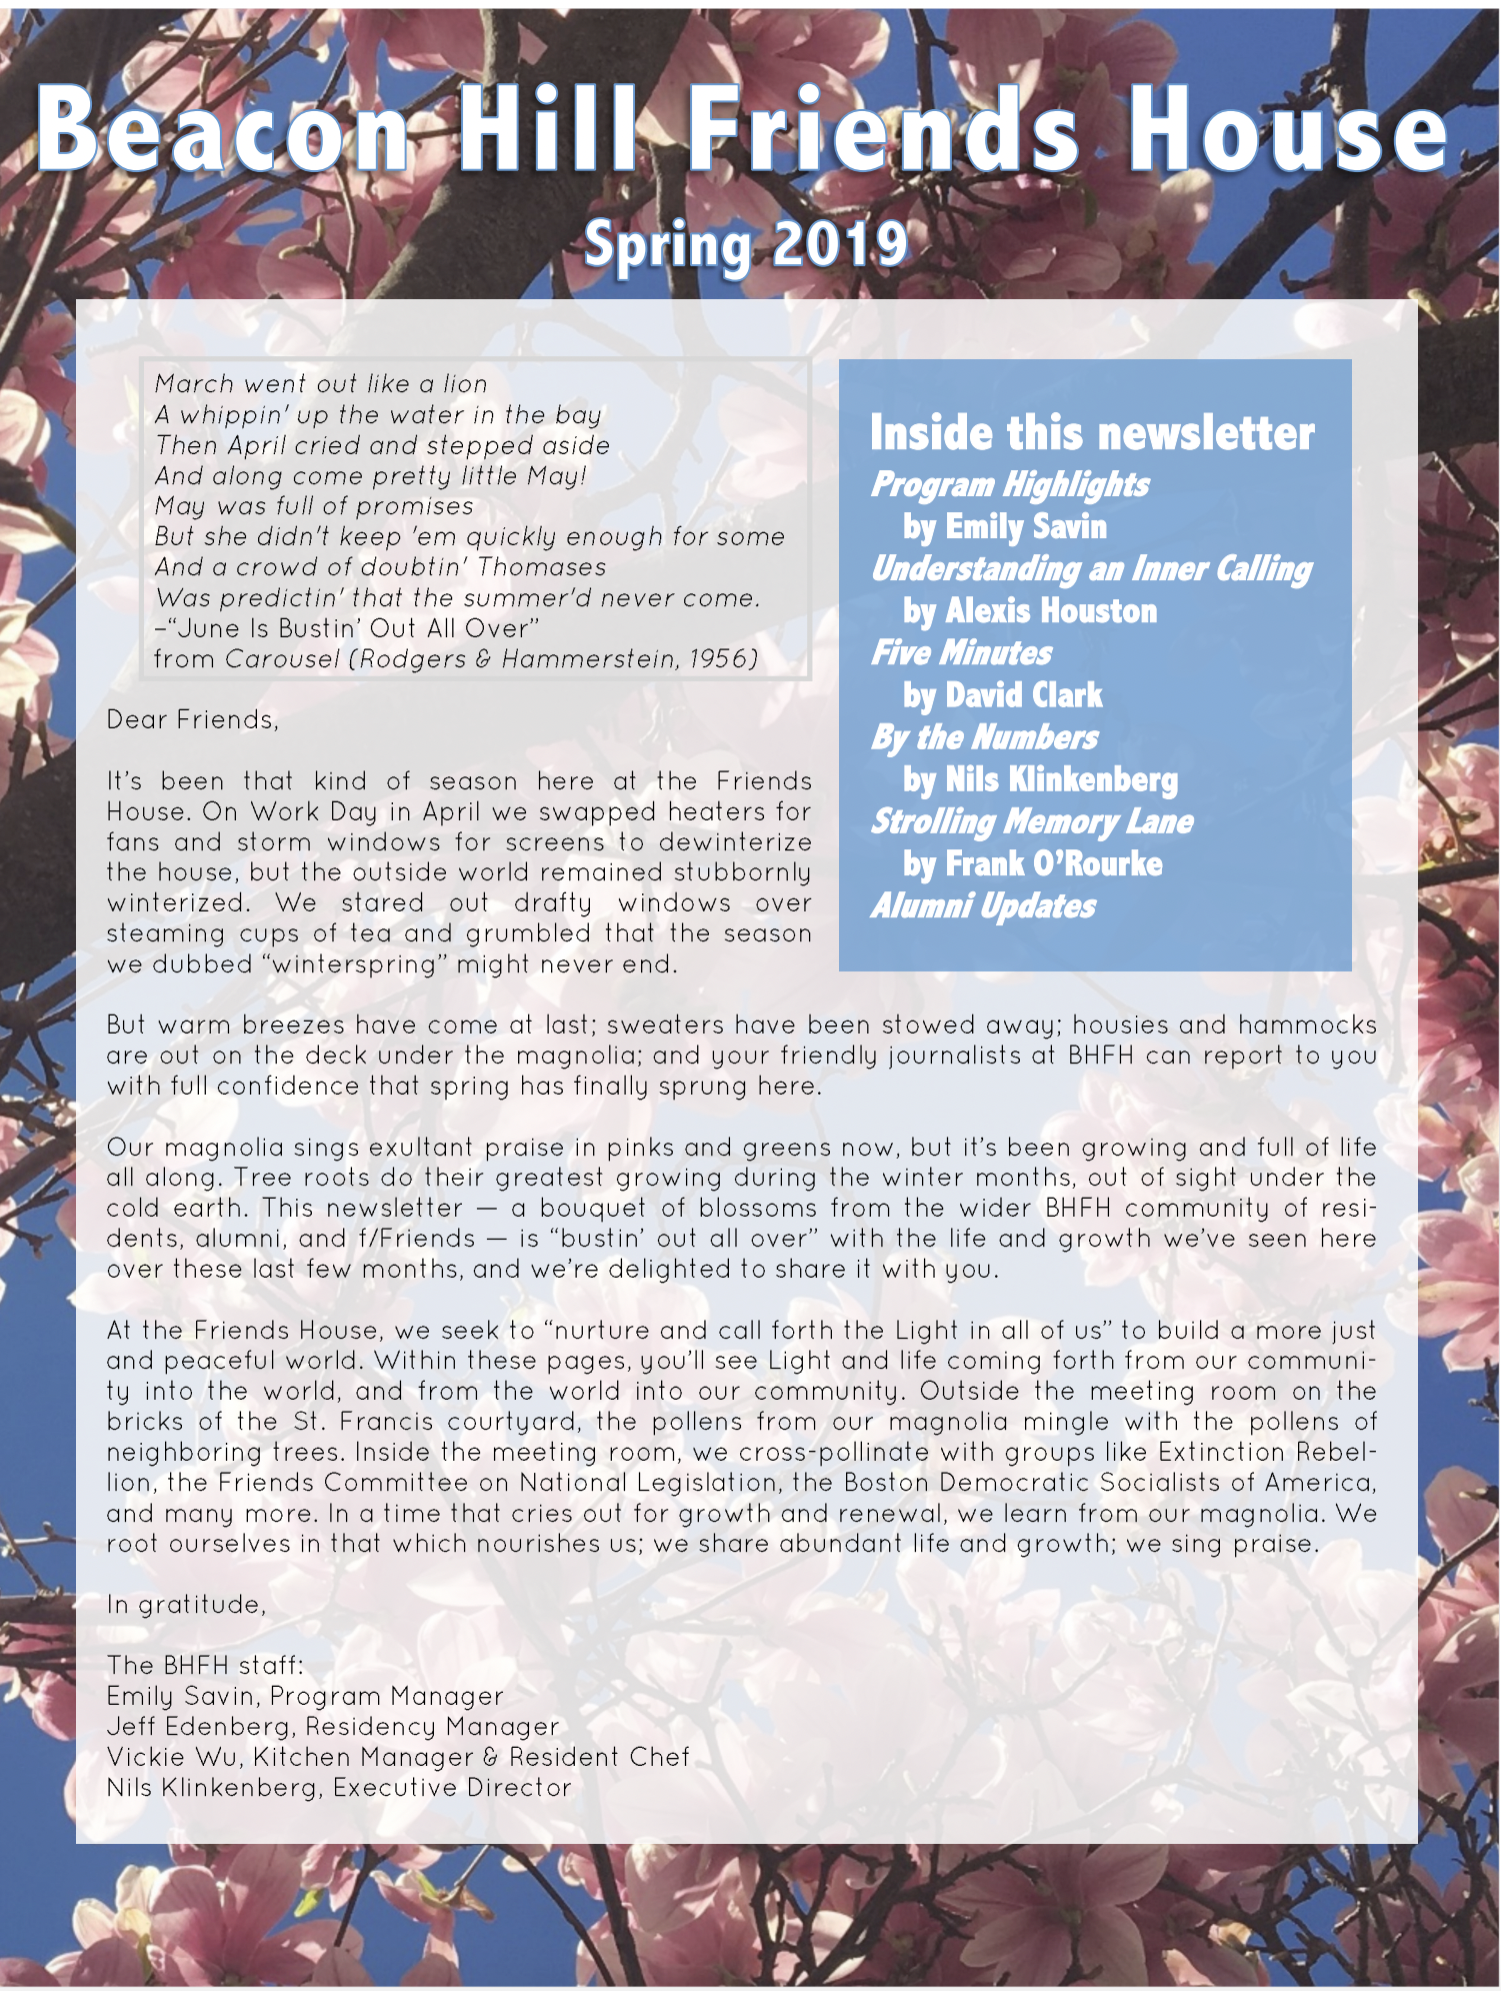 First page of spring/summer 2019 newsletter